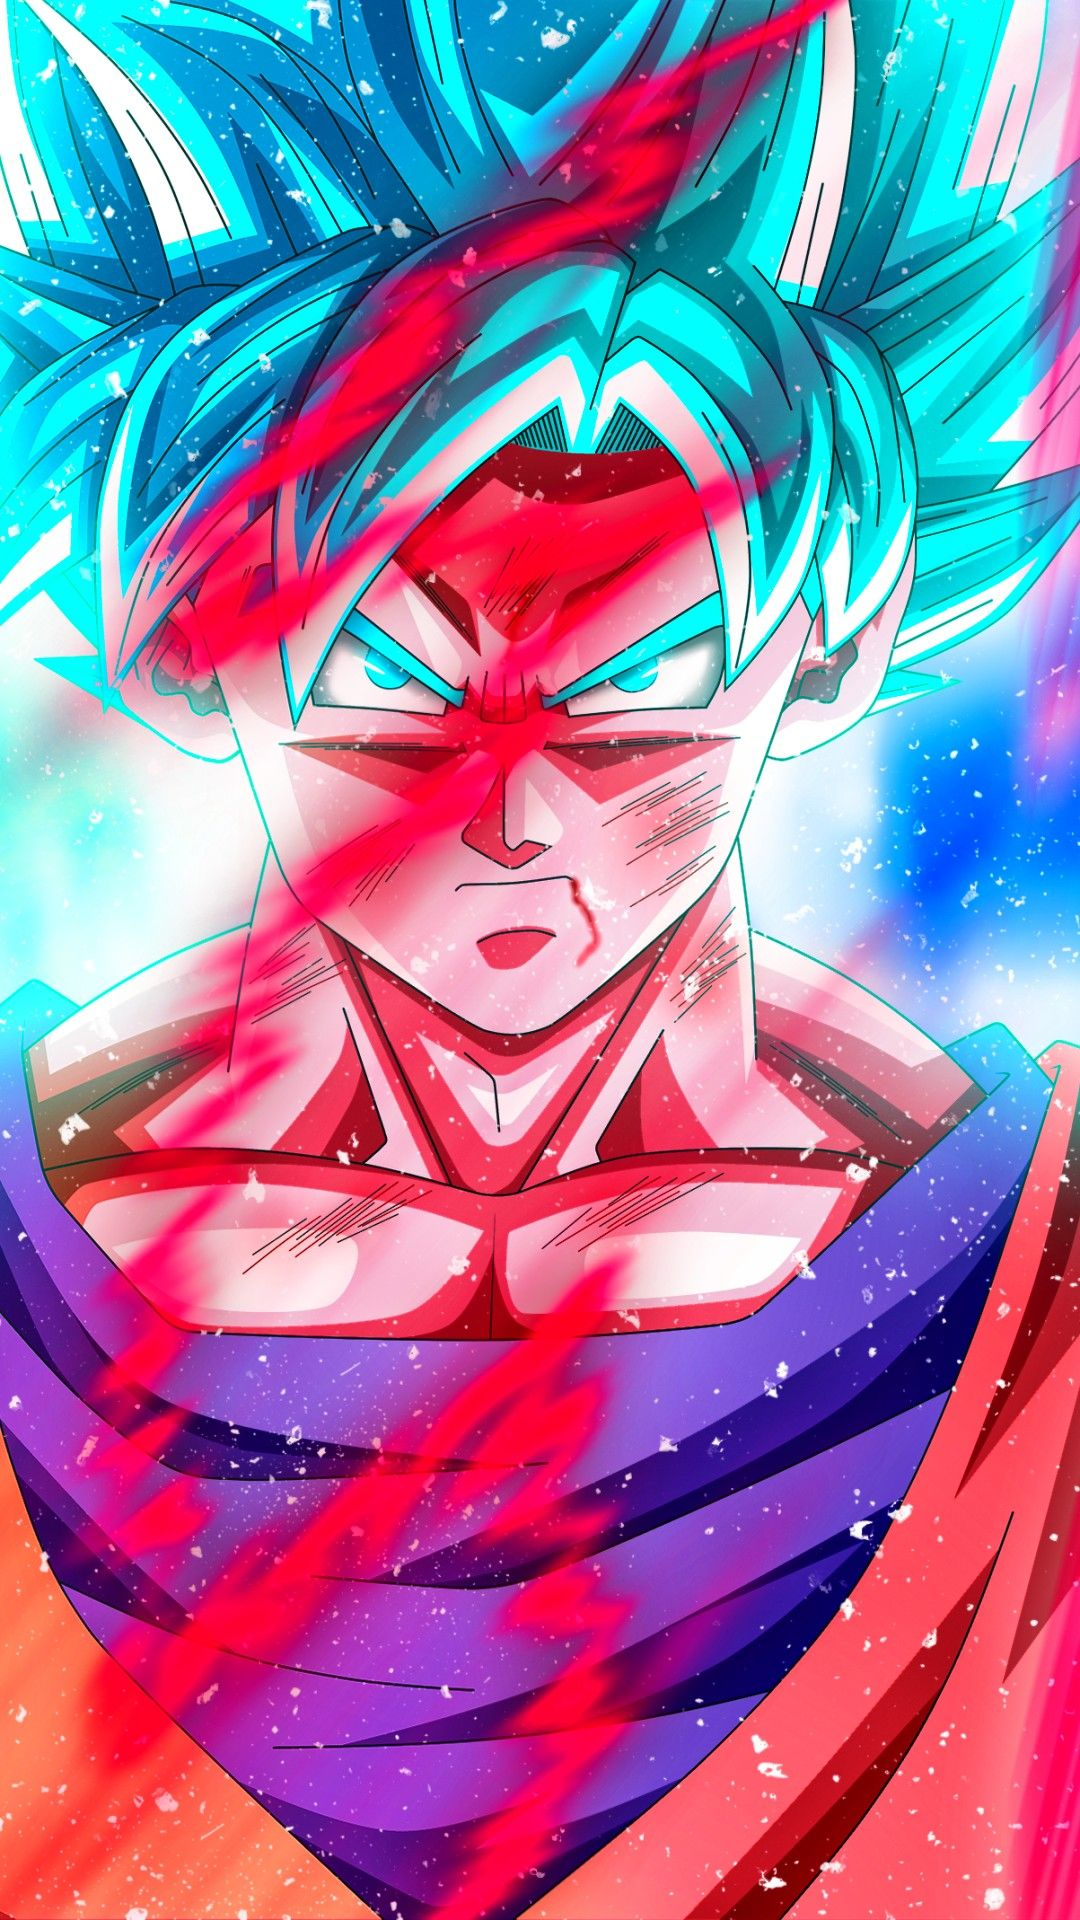 Online Shopping For Dragon Ball With Free Worldwide Shipping Dragon Ball Wallpaper Iphone Dragon Ball Wallpapers Anime Dragon Ball Super